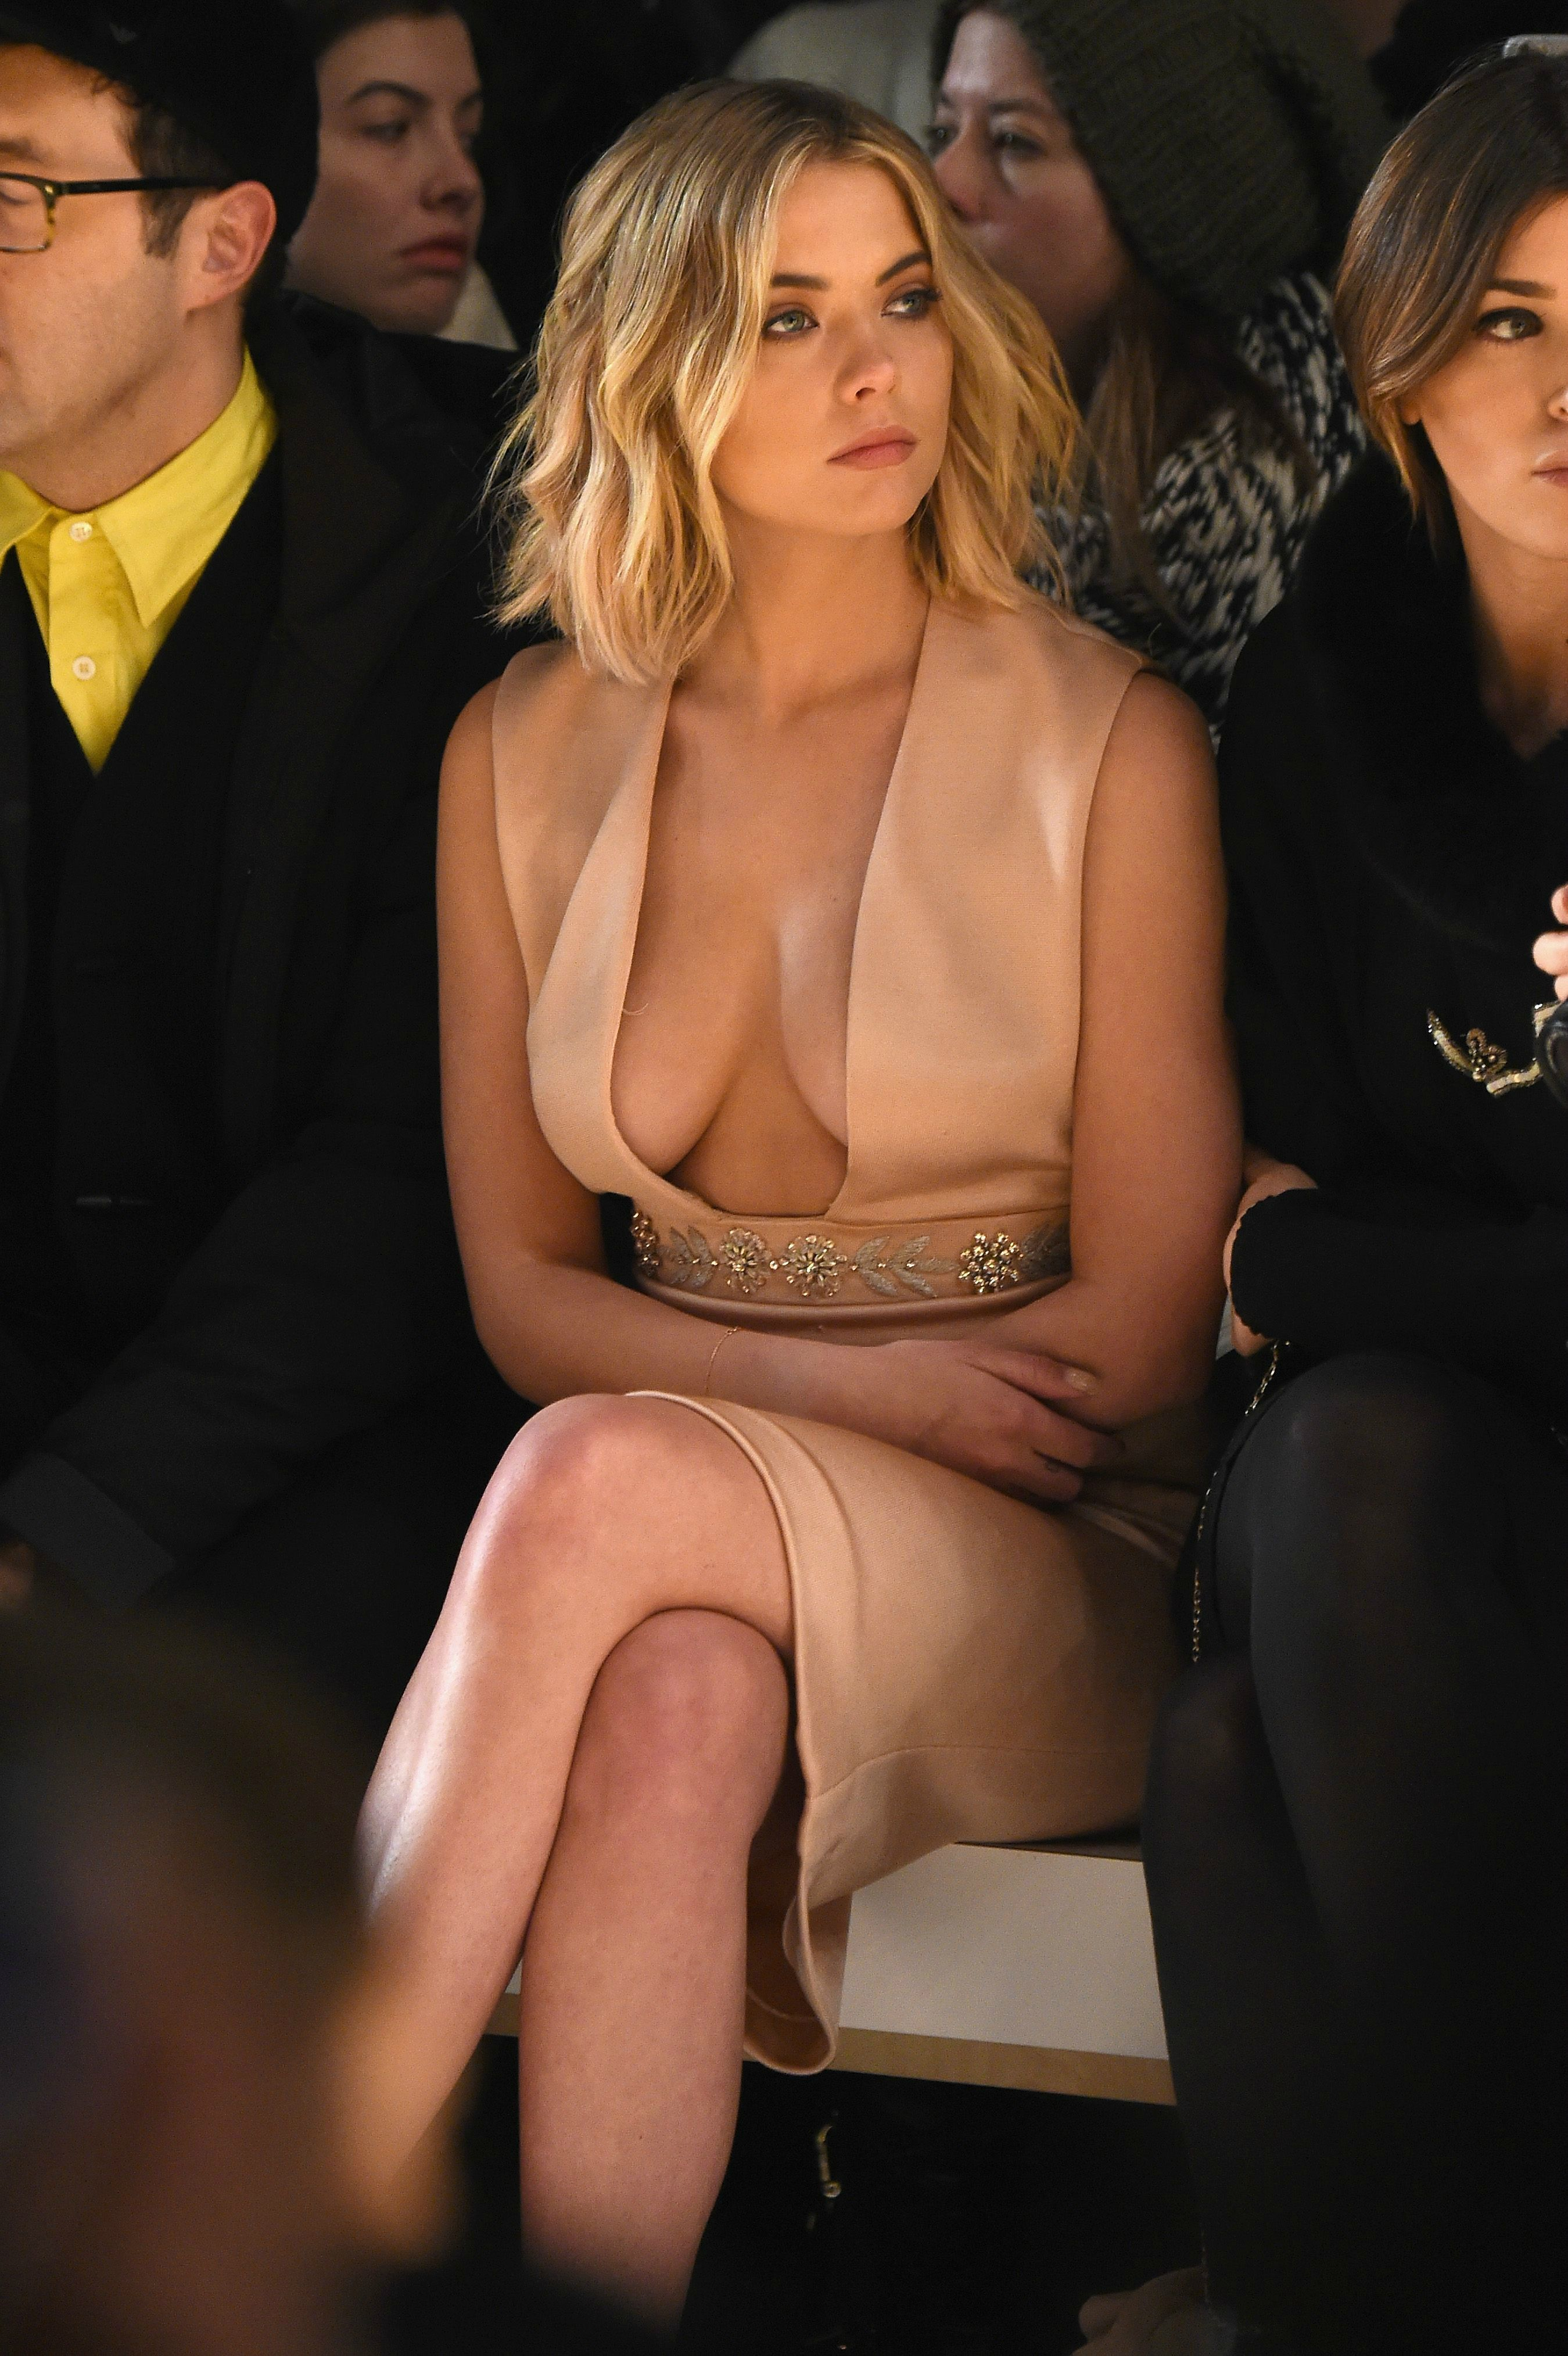 Porn Ashley Benson nudes (89 photos), Topless, Fappening, Boobs, braless 2019